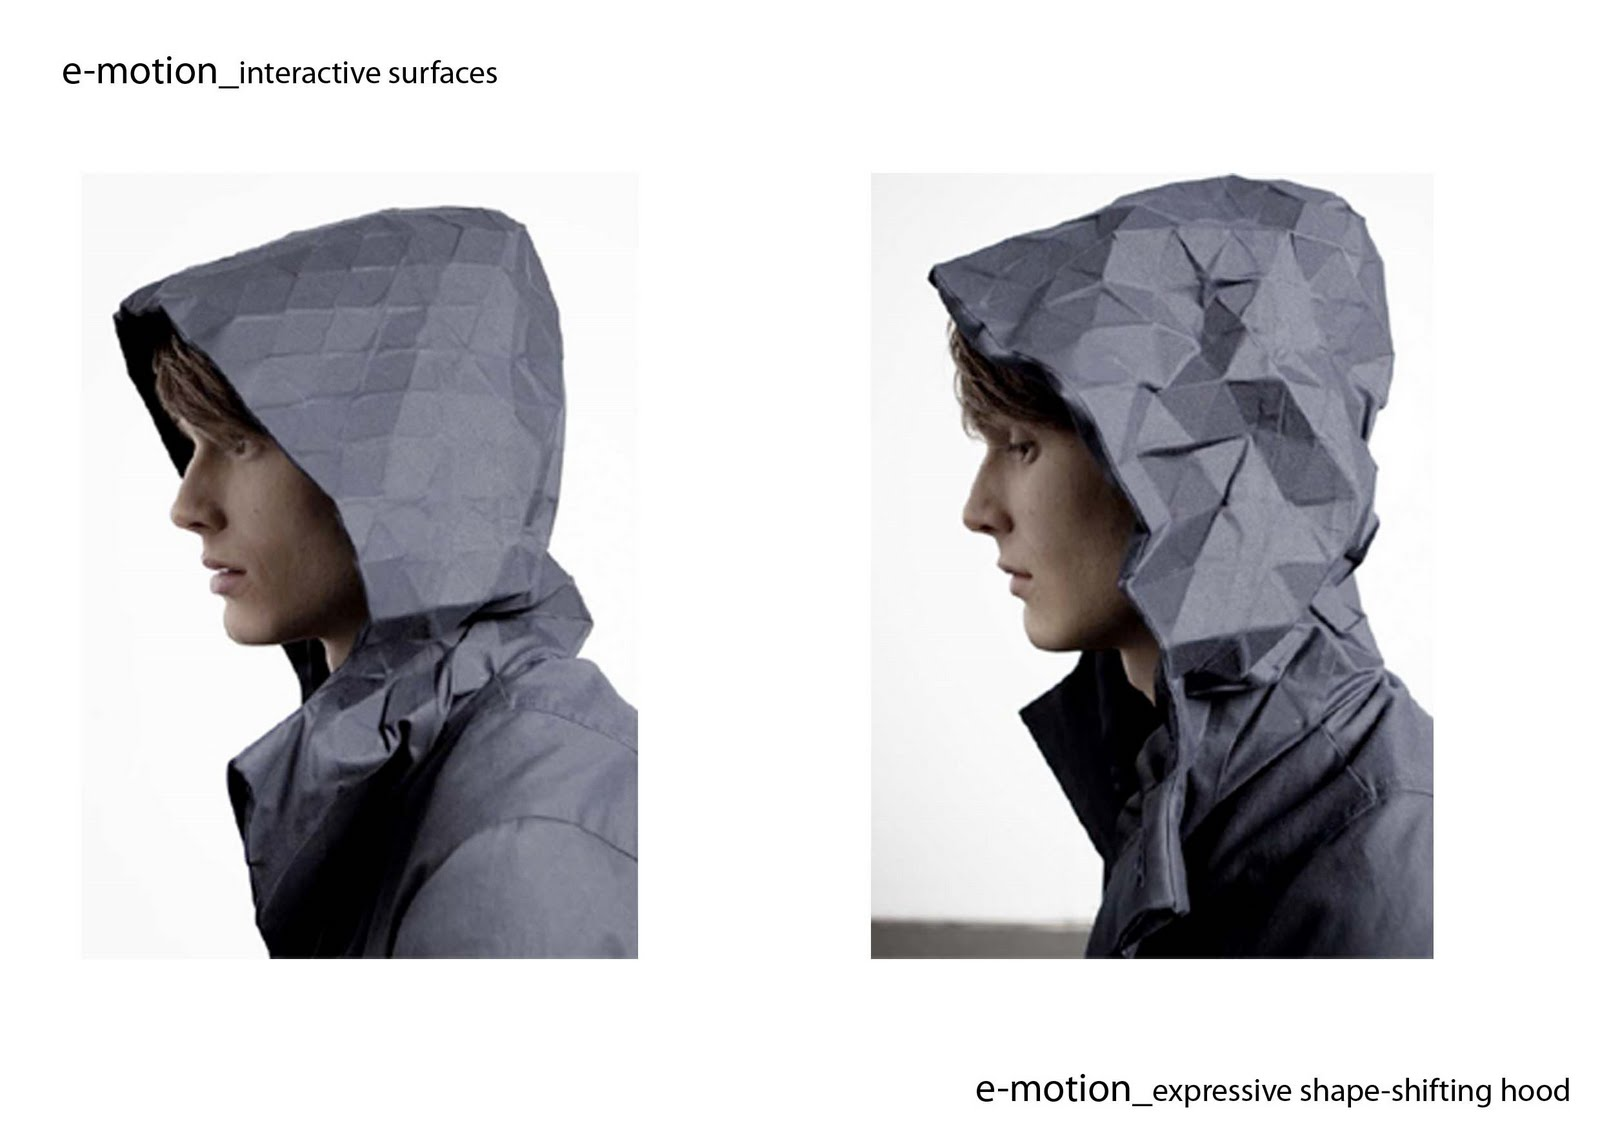 Max Schth shape-shifting hood